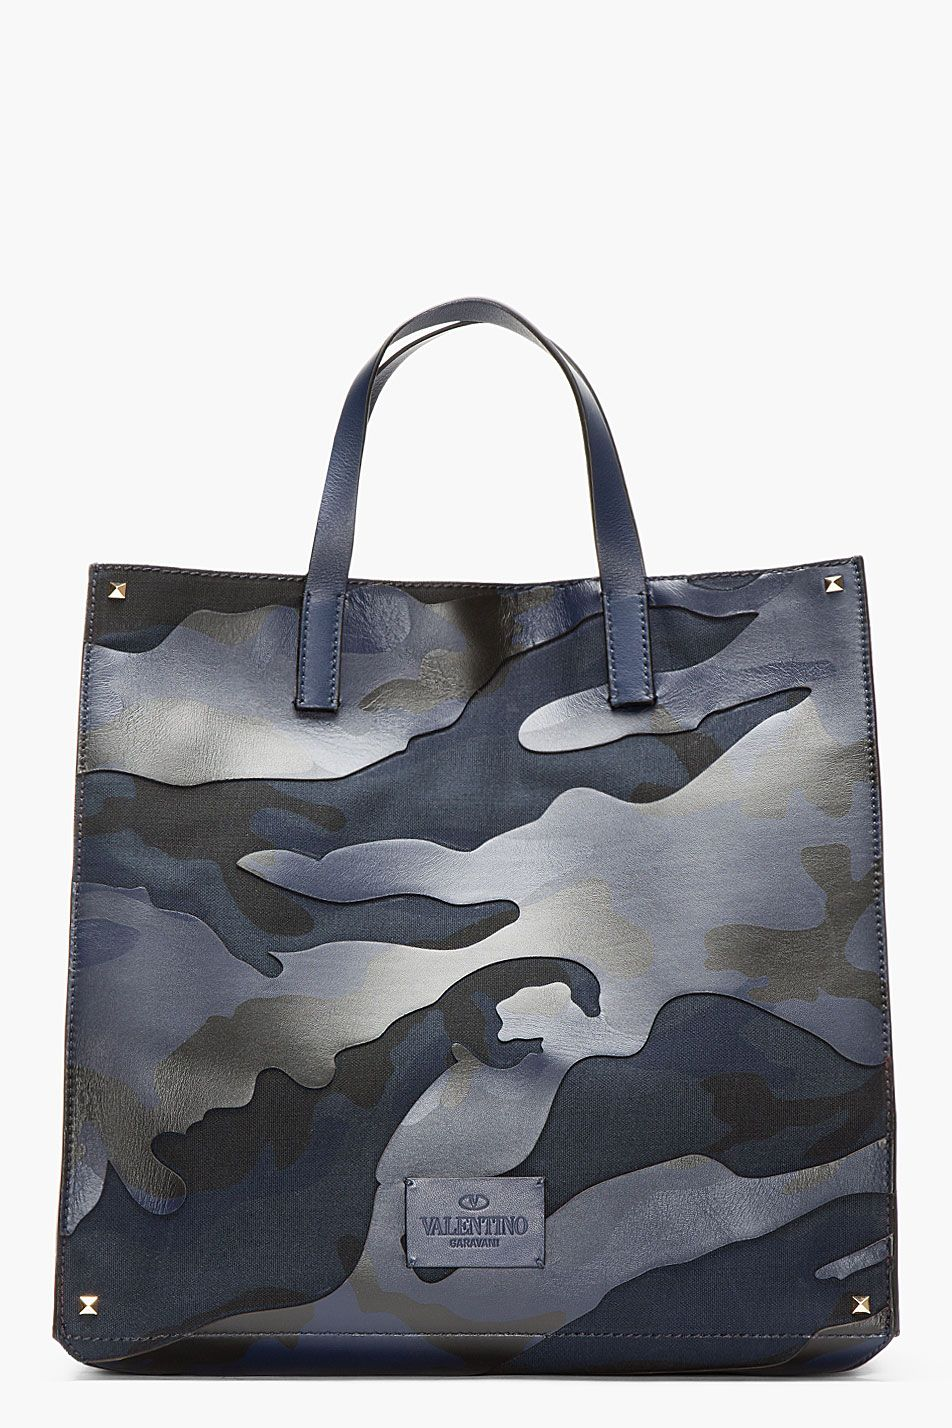 Totemanbags Blueamp; Camouflage Black Paneled Leather Valentino FJ5c3uTlK1